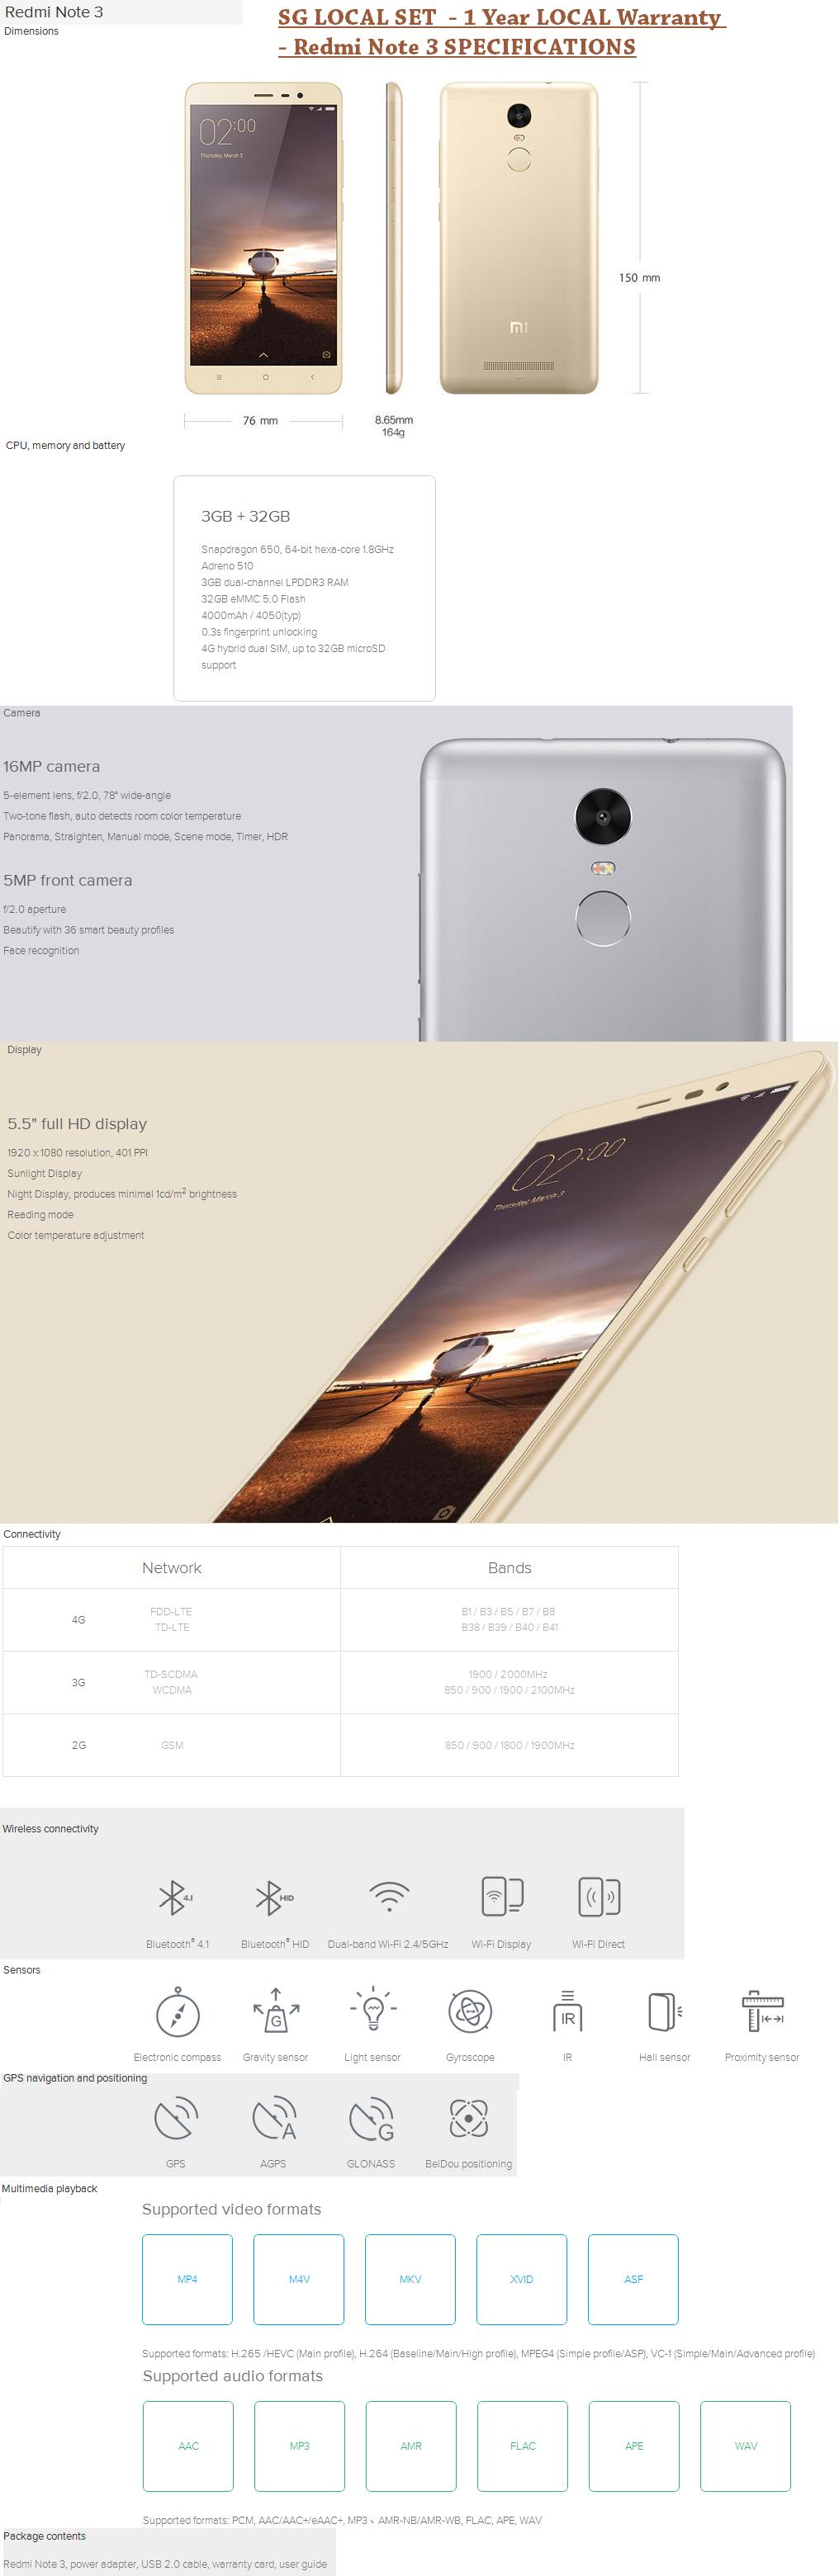 Every Need Want Day Xiaomi Redmi Note 2 4g Lte Dual Simcard Ram 1gb Internal 8gb Hwz Review Http Hardwarezonecomsg Tech News Updates 3 Snapdragon 650 Variant